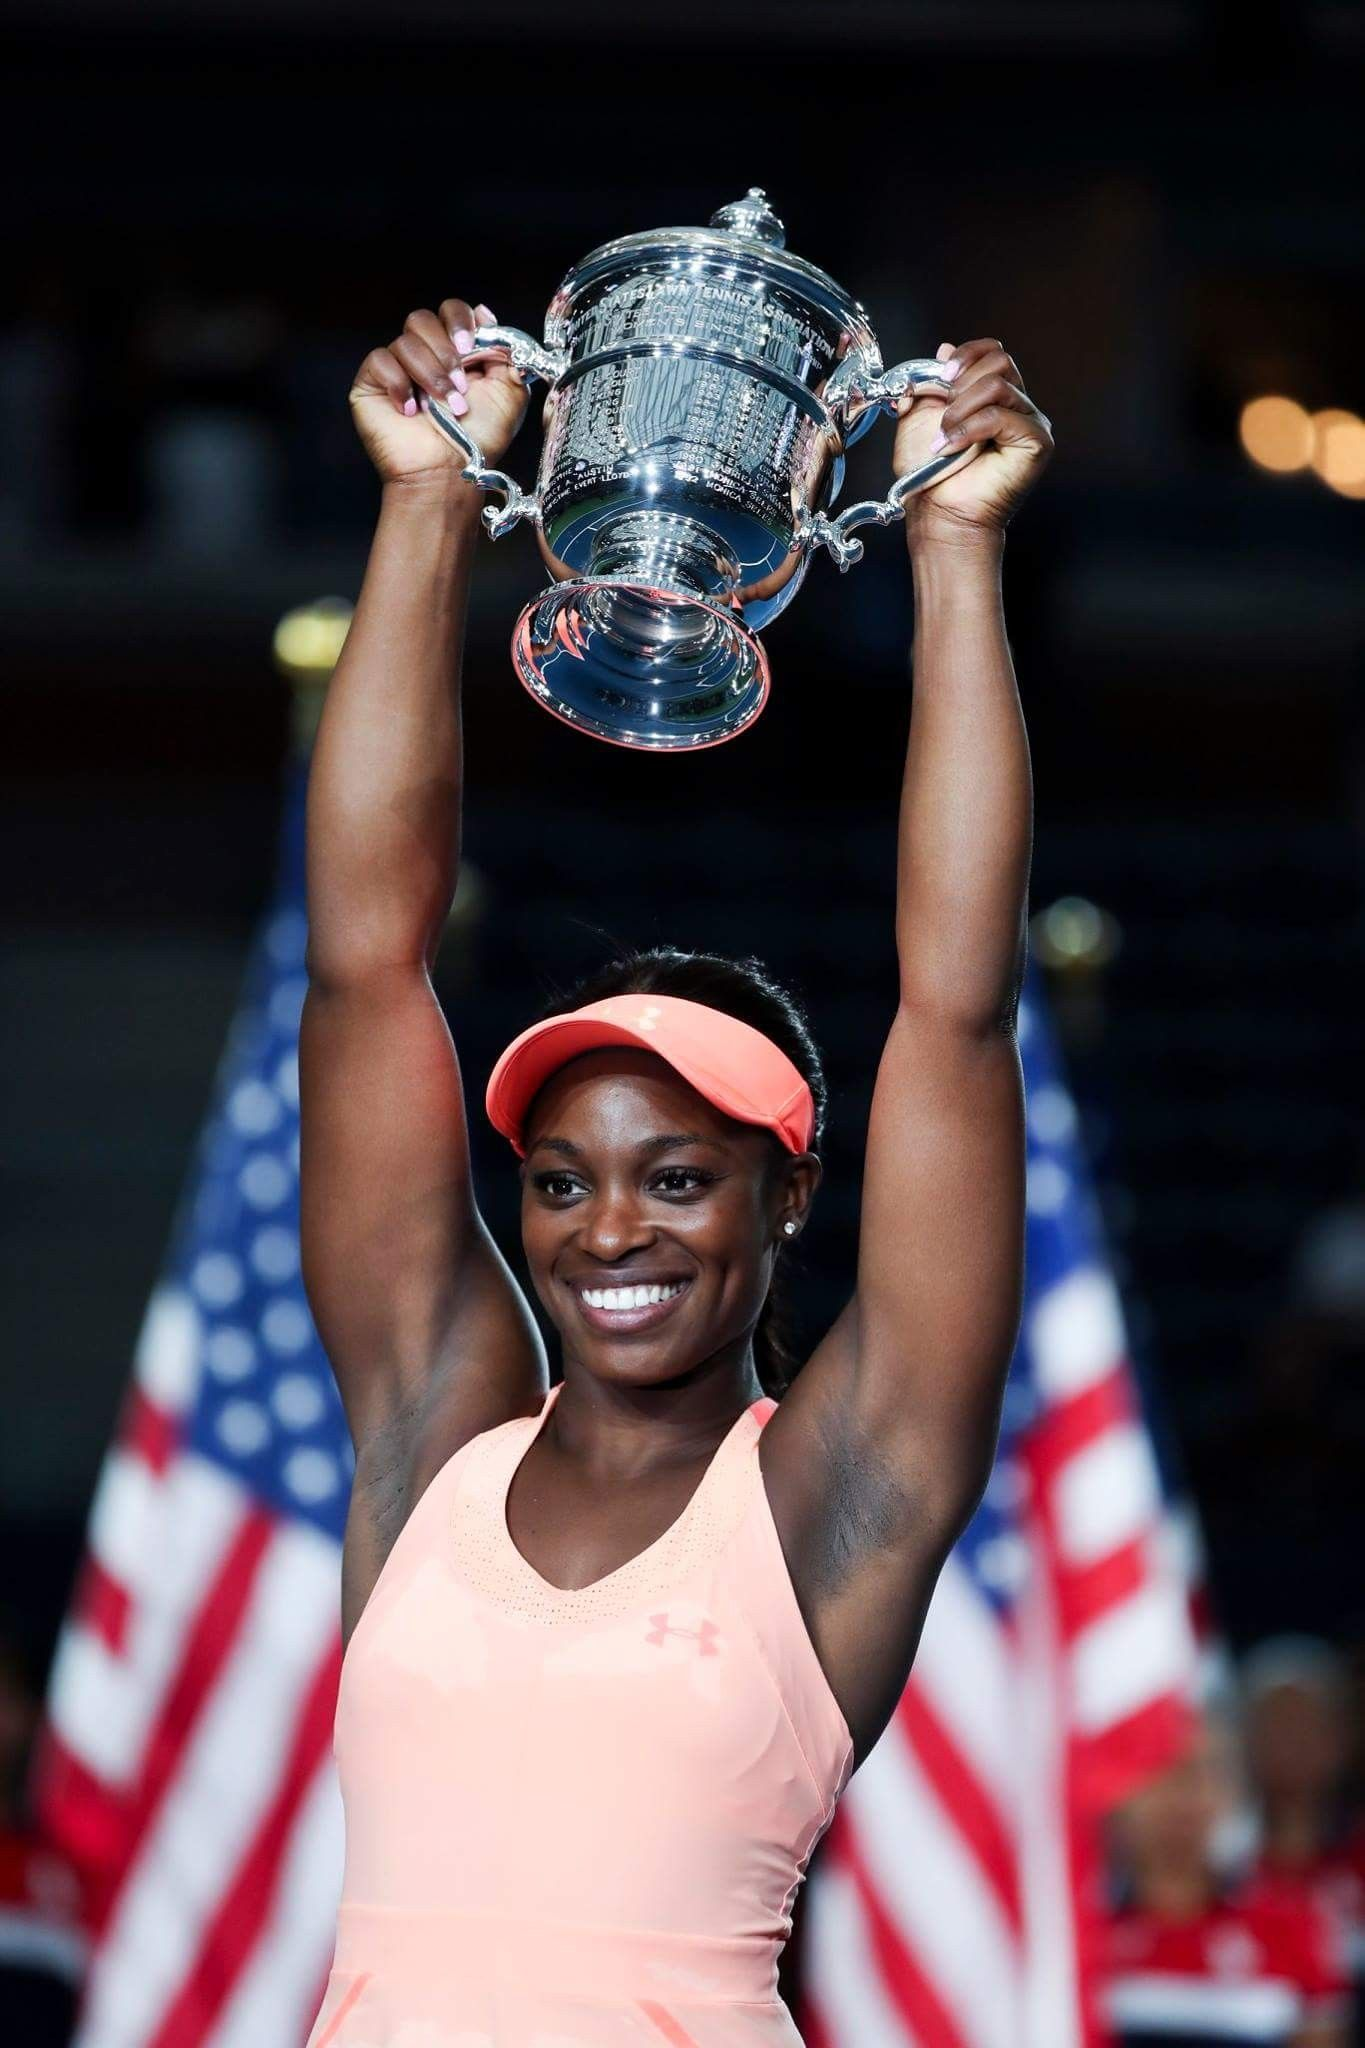 Celebrites Sloane Stephens nude (44 foto and video), Topless, Paparazzi, Feet, legs 2006